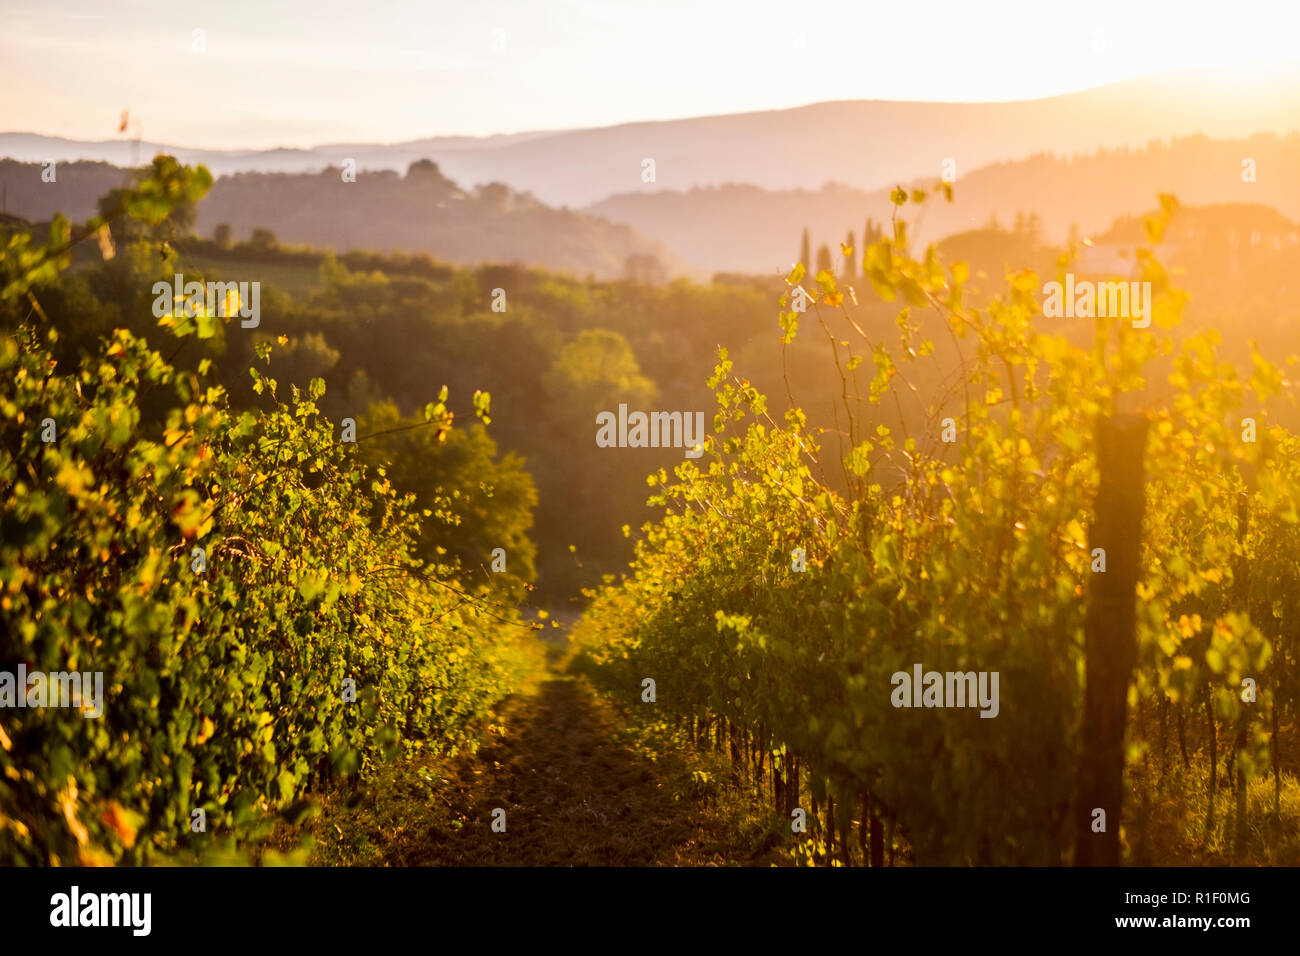 Nice view of countryyard in tuscany with wine produciton and winery concept. Sunset light create a golden and warm landscape to enjoy the beauty of th - Stock Image